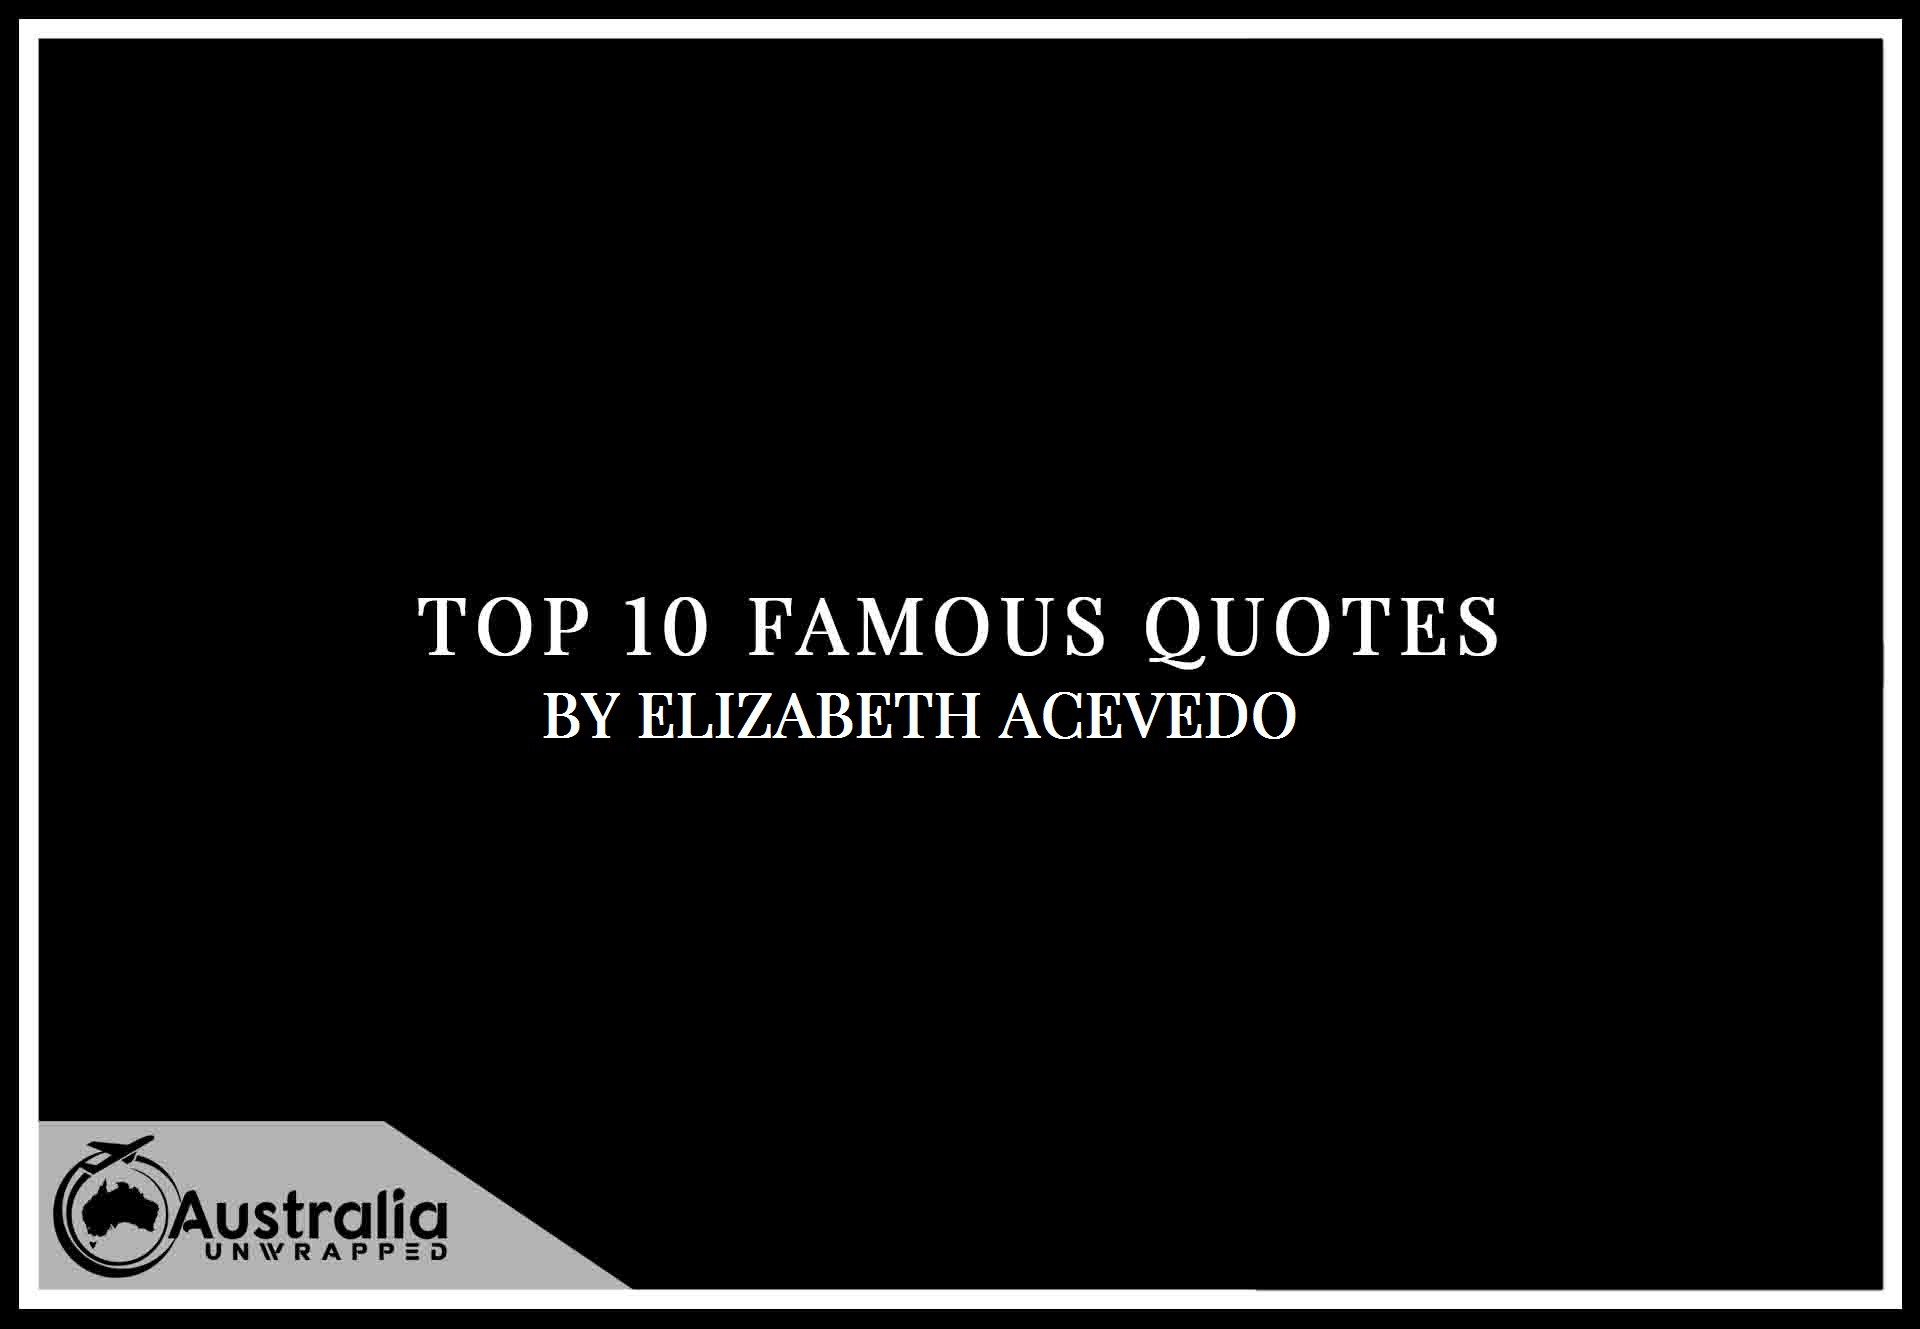 Elizabeth Acevedo's Top 10 Popular and Famous Quotes